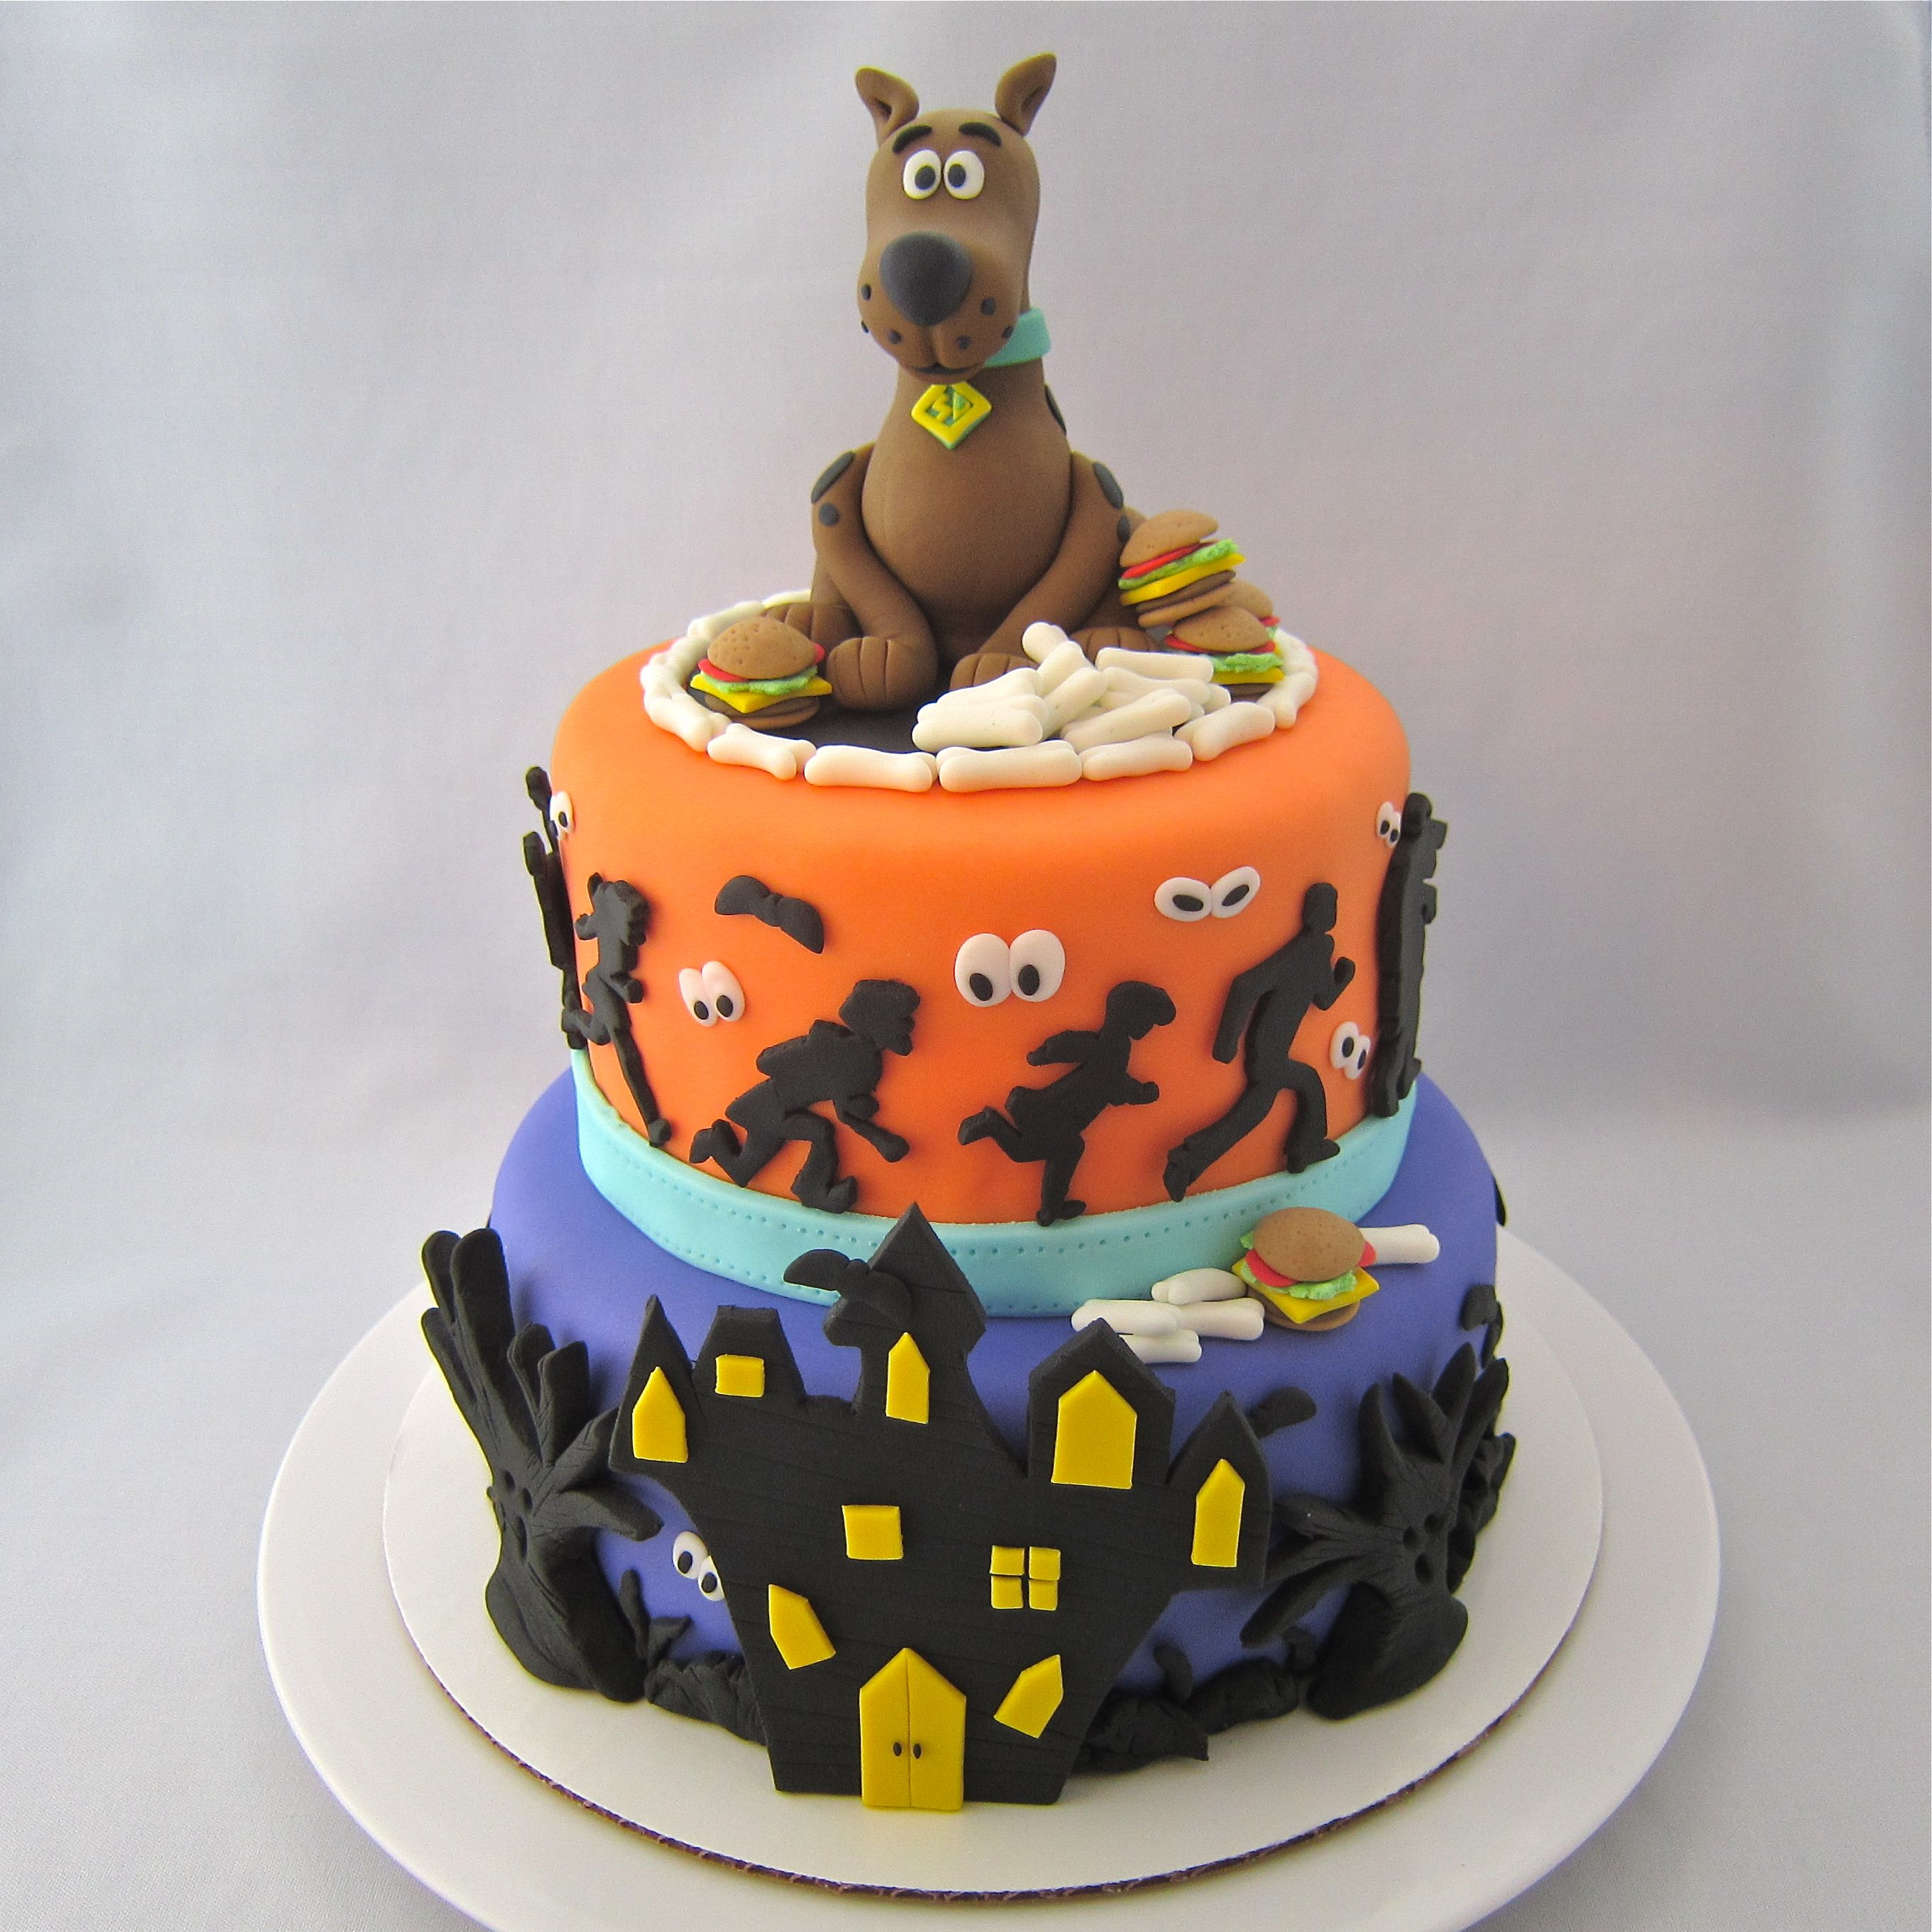 Scooby Doo Cake For Sweet 16 Birthday Party Scooby Doo